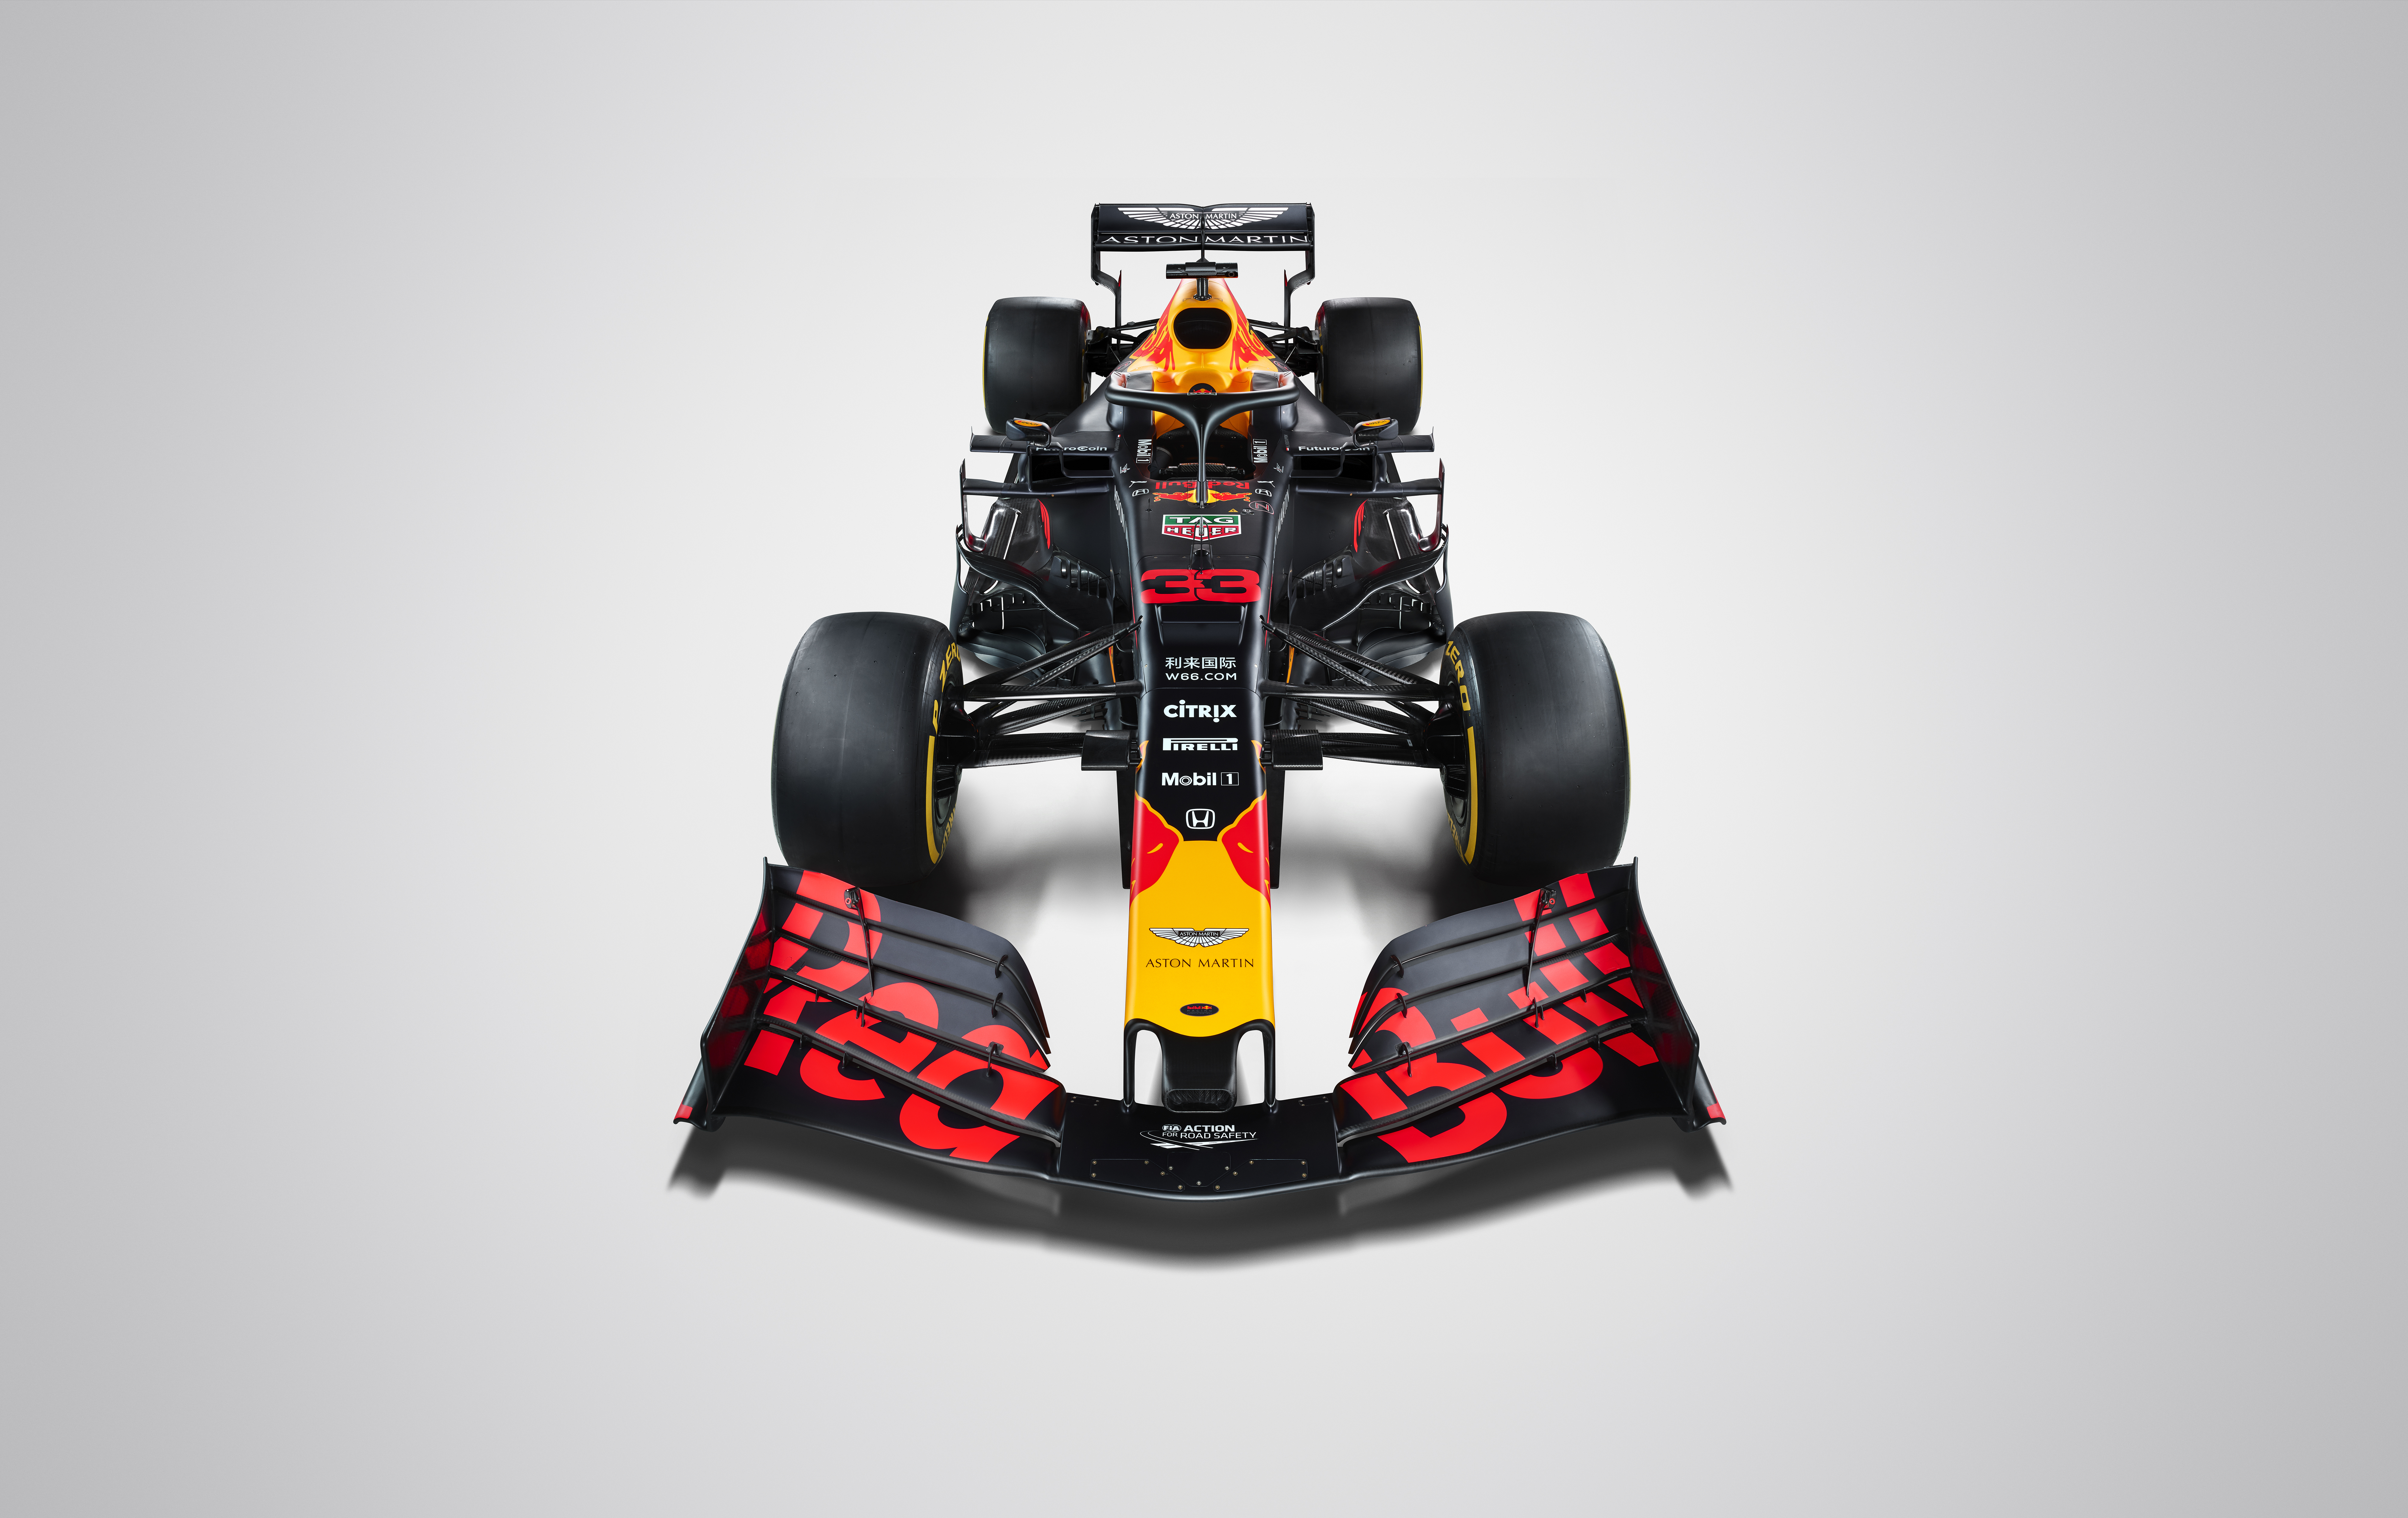 2019 Red Bull Rb15 F1 Car Launch Pictures F1 Fansitecom